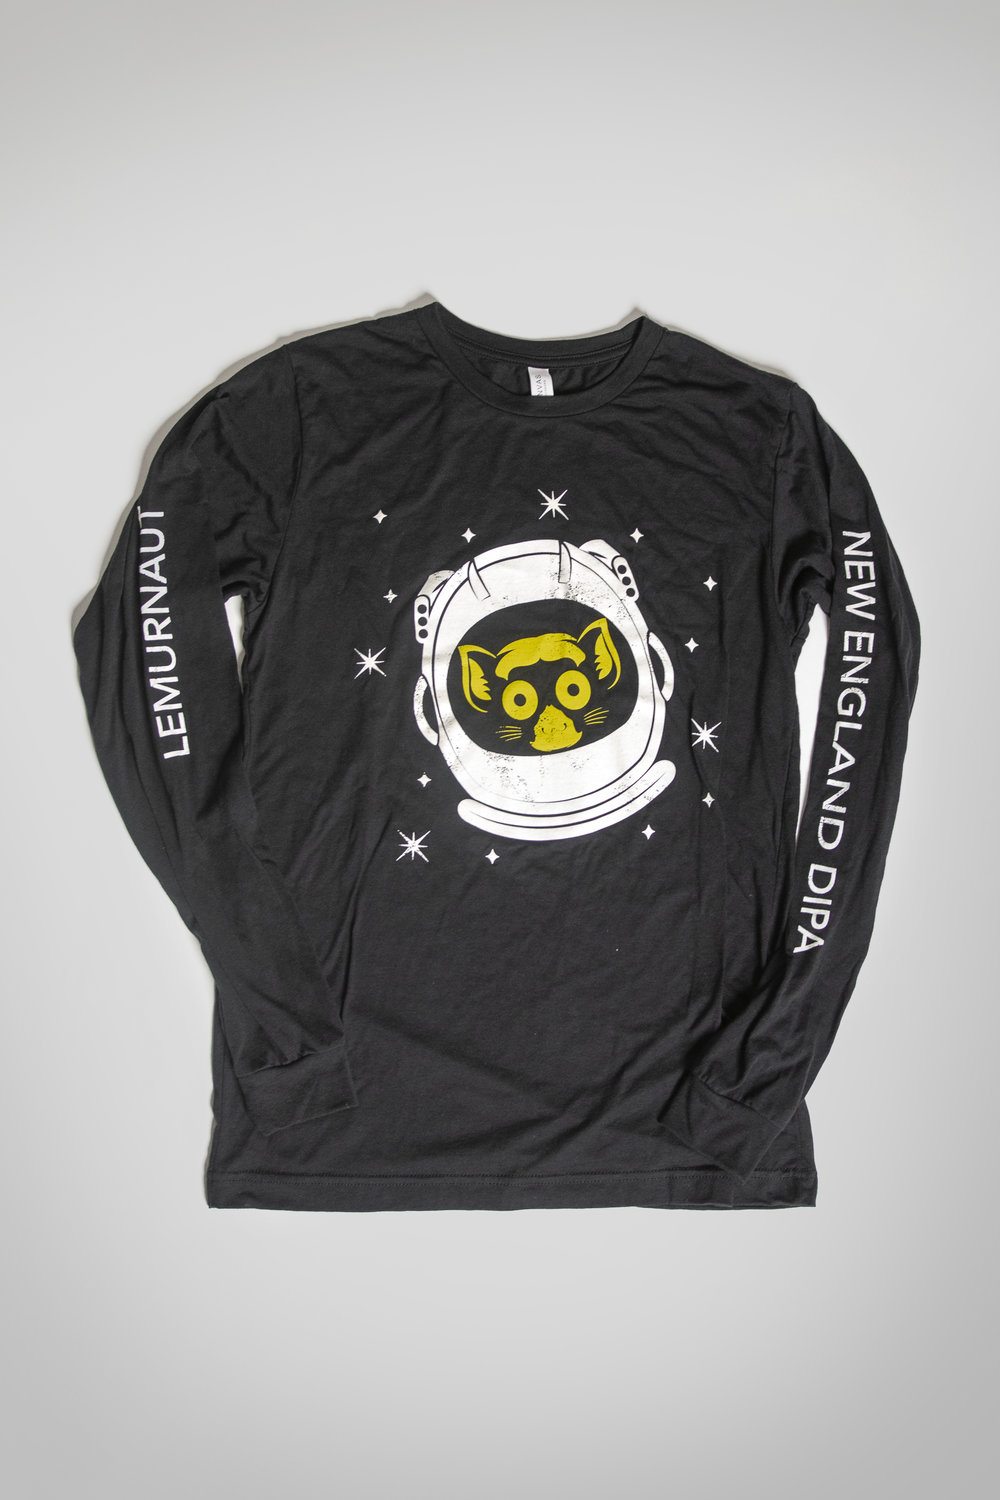 Lemurnaut Long Sleeve: $30